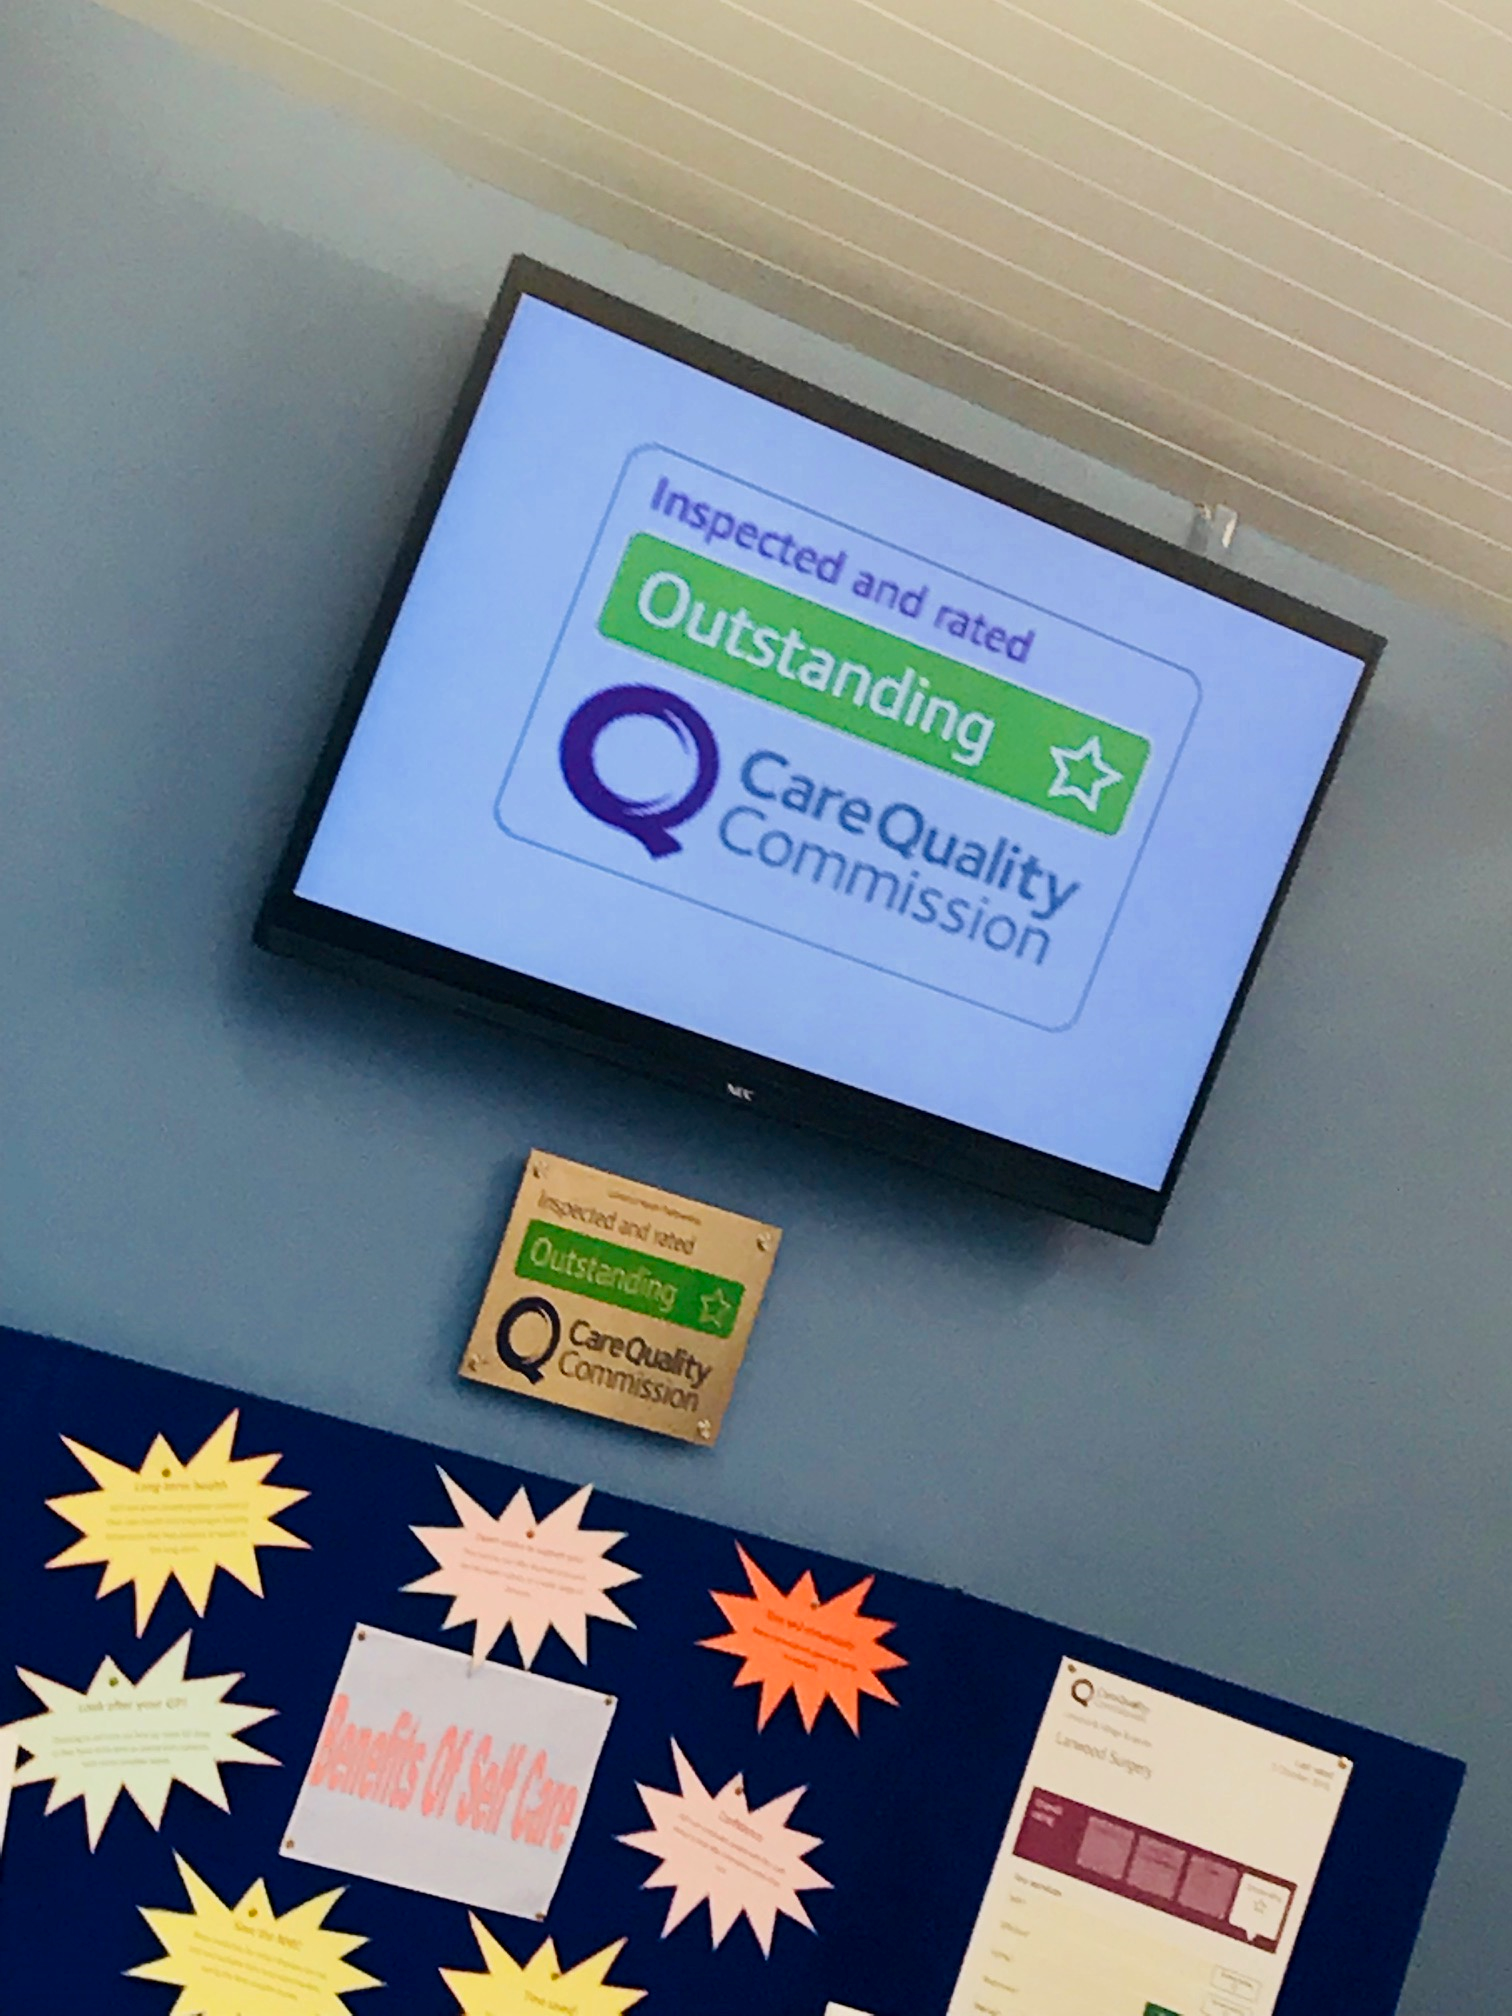 Media Screens – they helped input what information to be put on the Media screens displayed across our sites